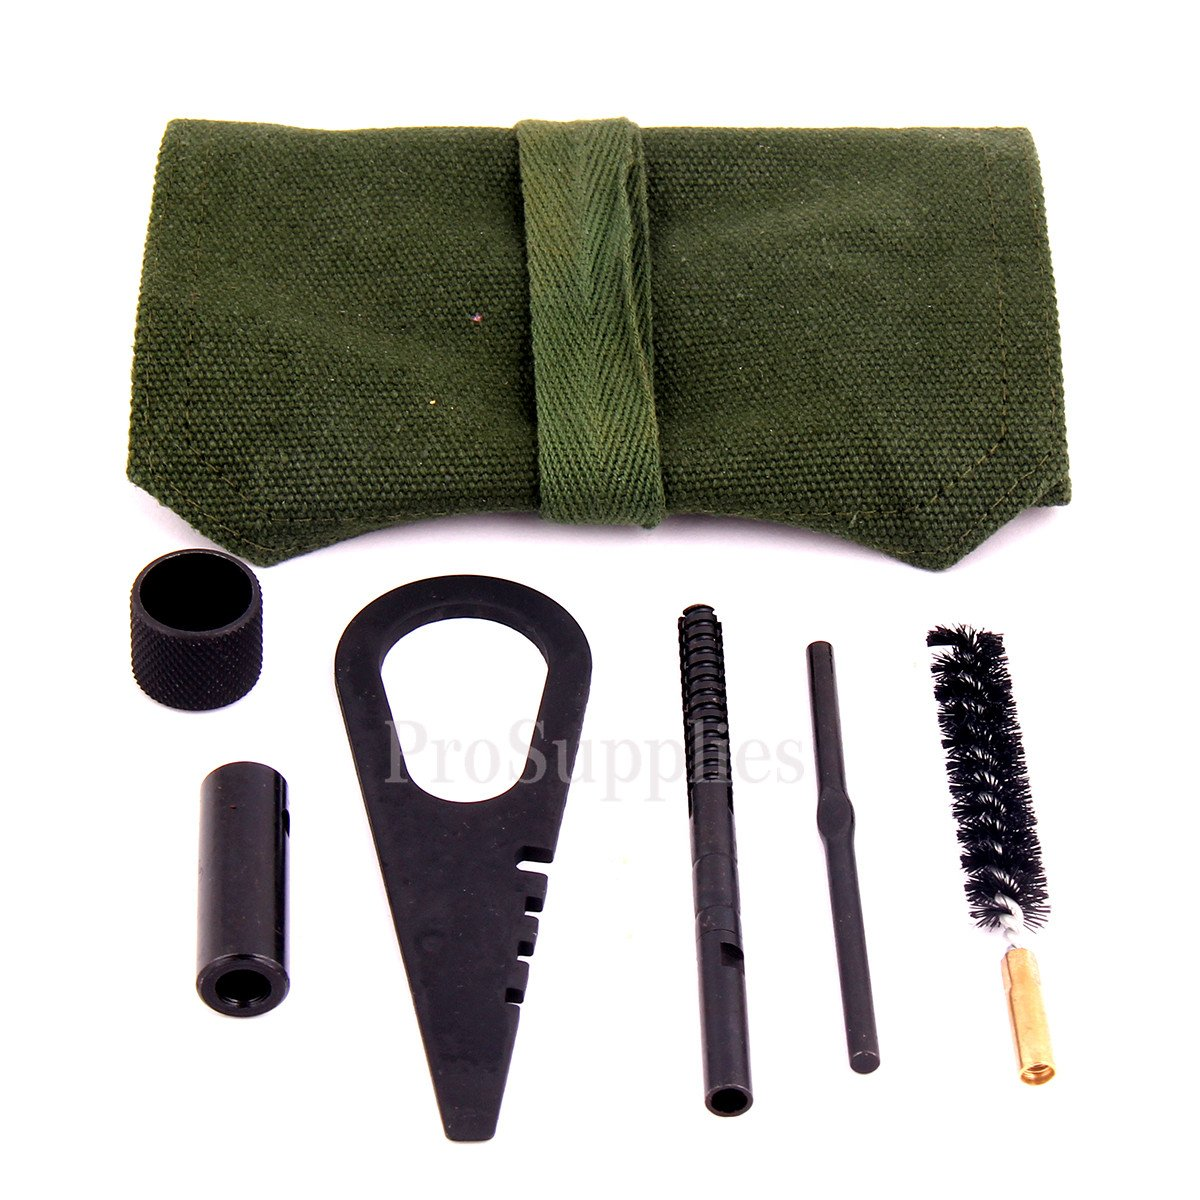 TACFUN Mosin Nagant Cleaning Kit/Cleaning Tools with Pouch LR 7.62x54R, Includes: Mosin Nagant Tool, Brush, Jag, Cleaning Rod Attachment, End Cap for Rod, Pouch